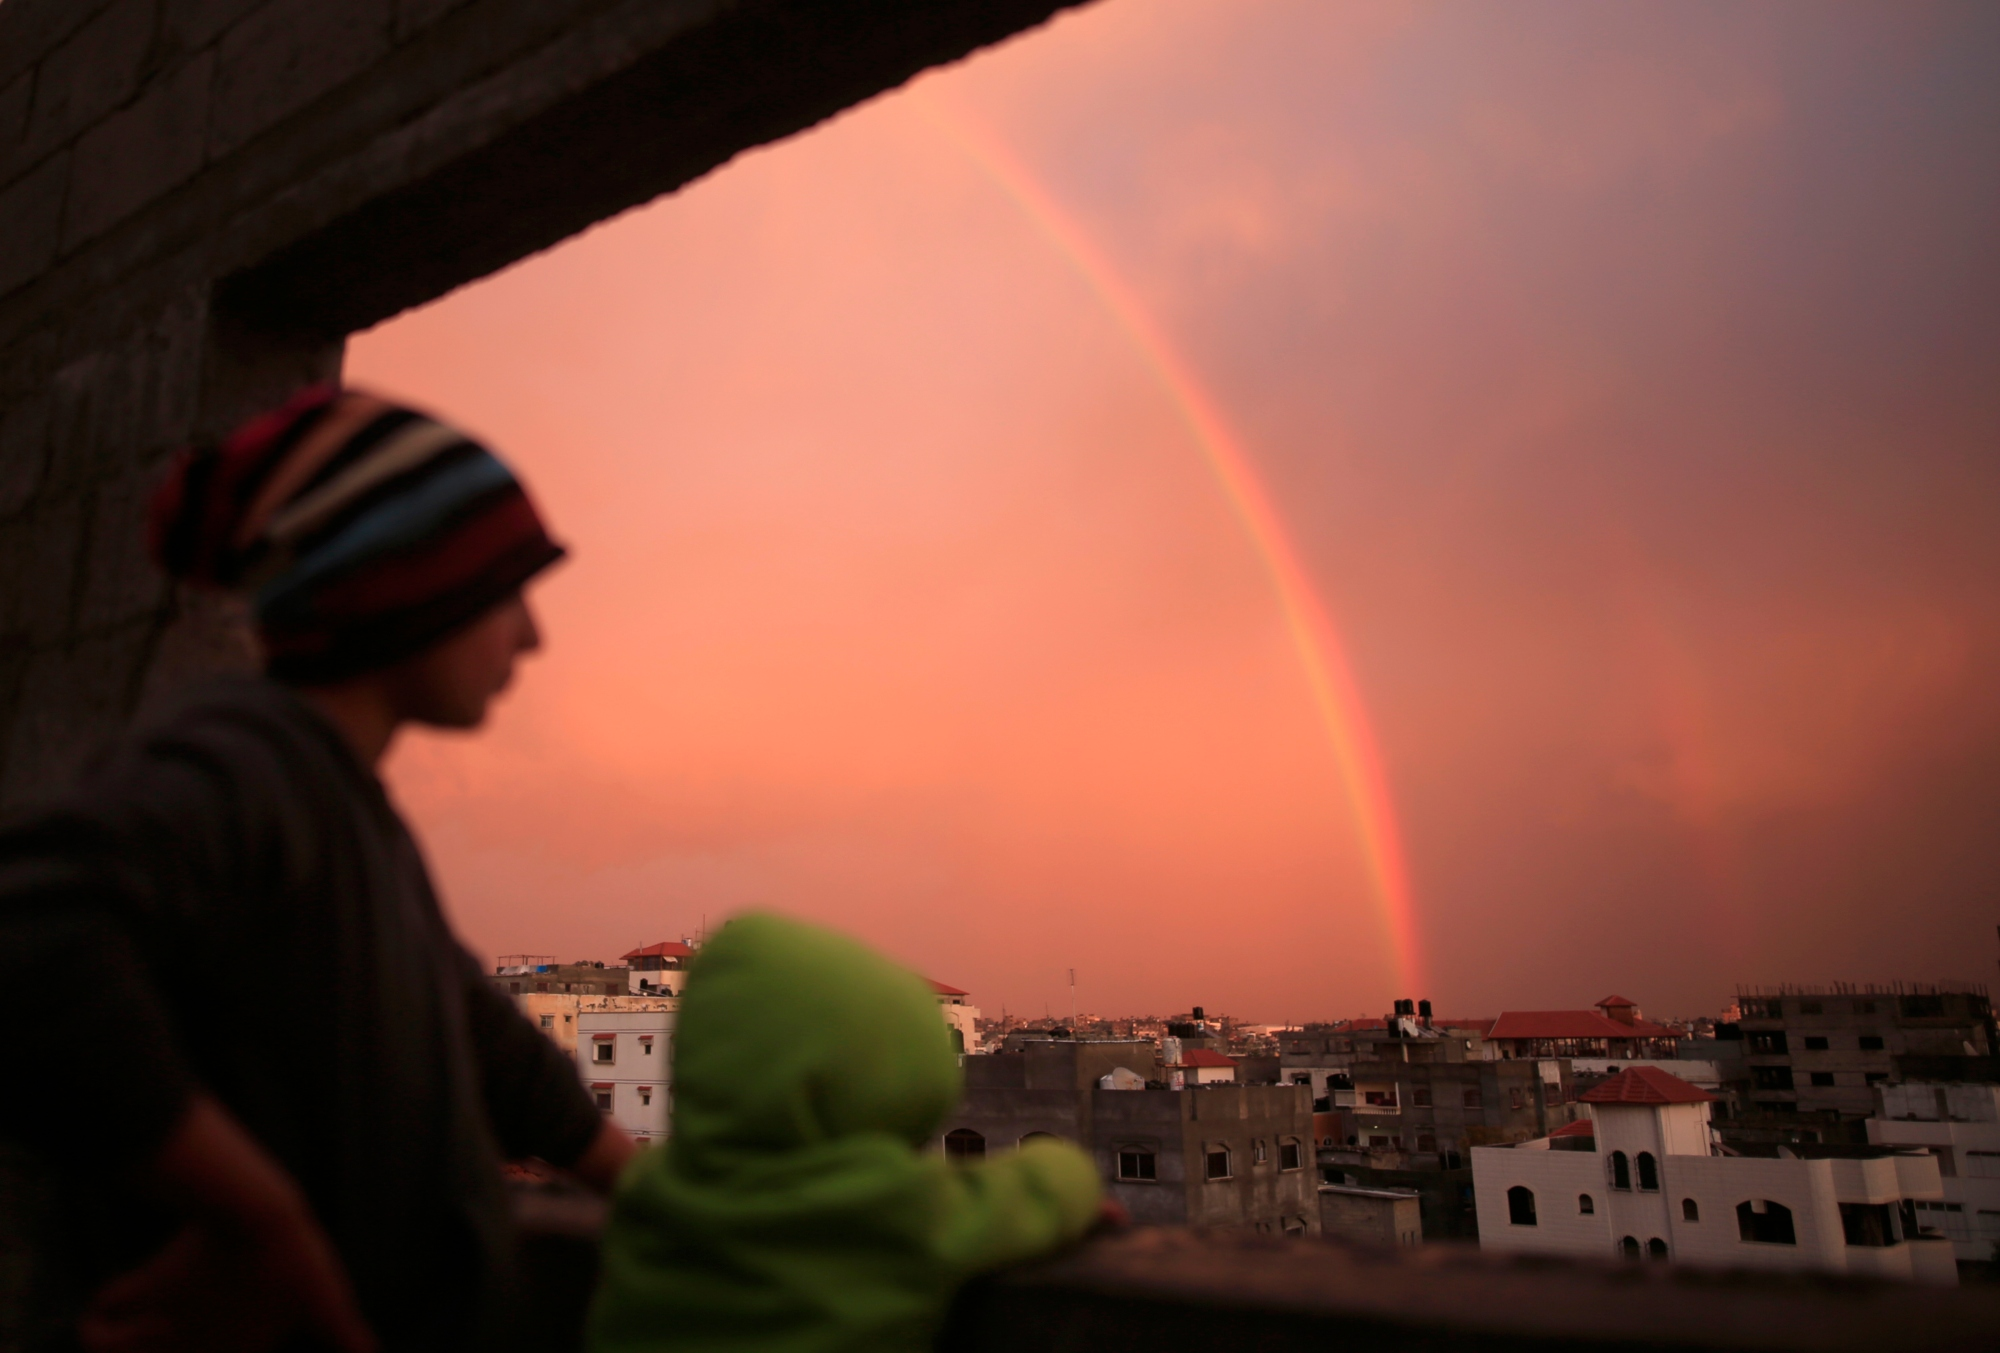 Caption: Palestinian children look at a rainbow appearing over Gaza City on 15 February 2017 (AFP)